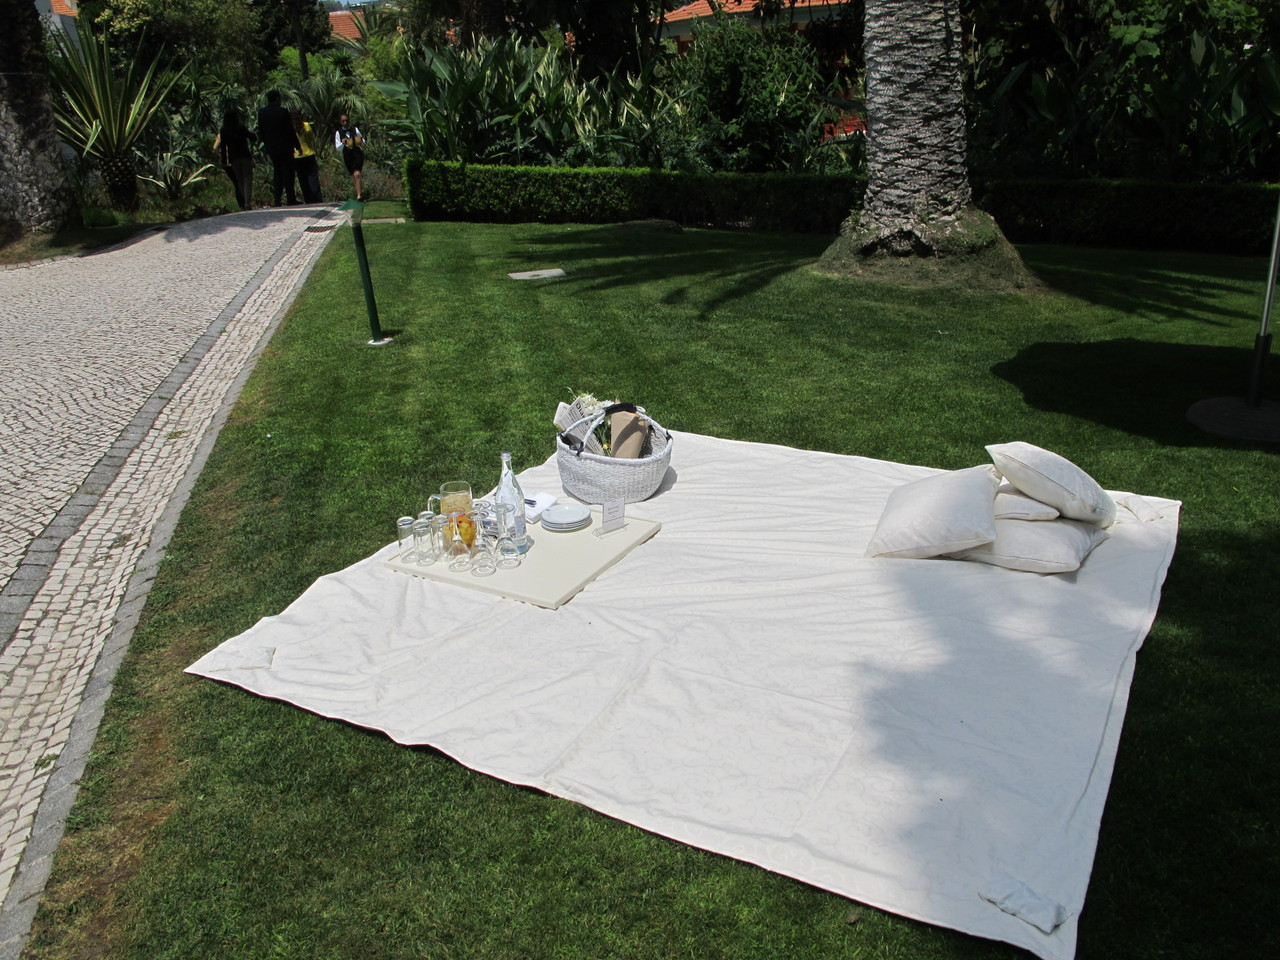 Pic-Nic nos jardins do Pestana Palace